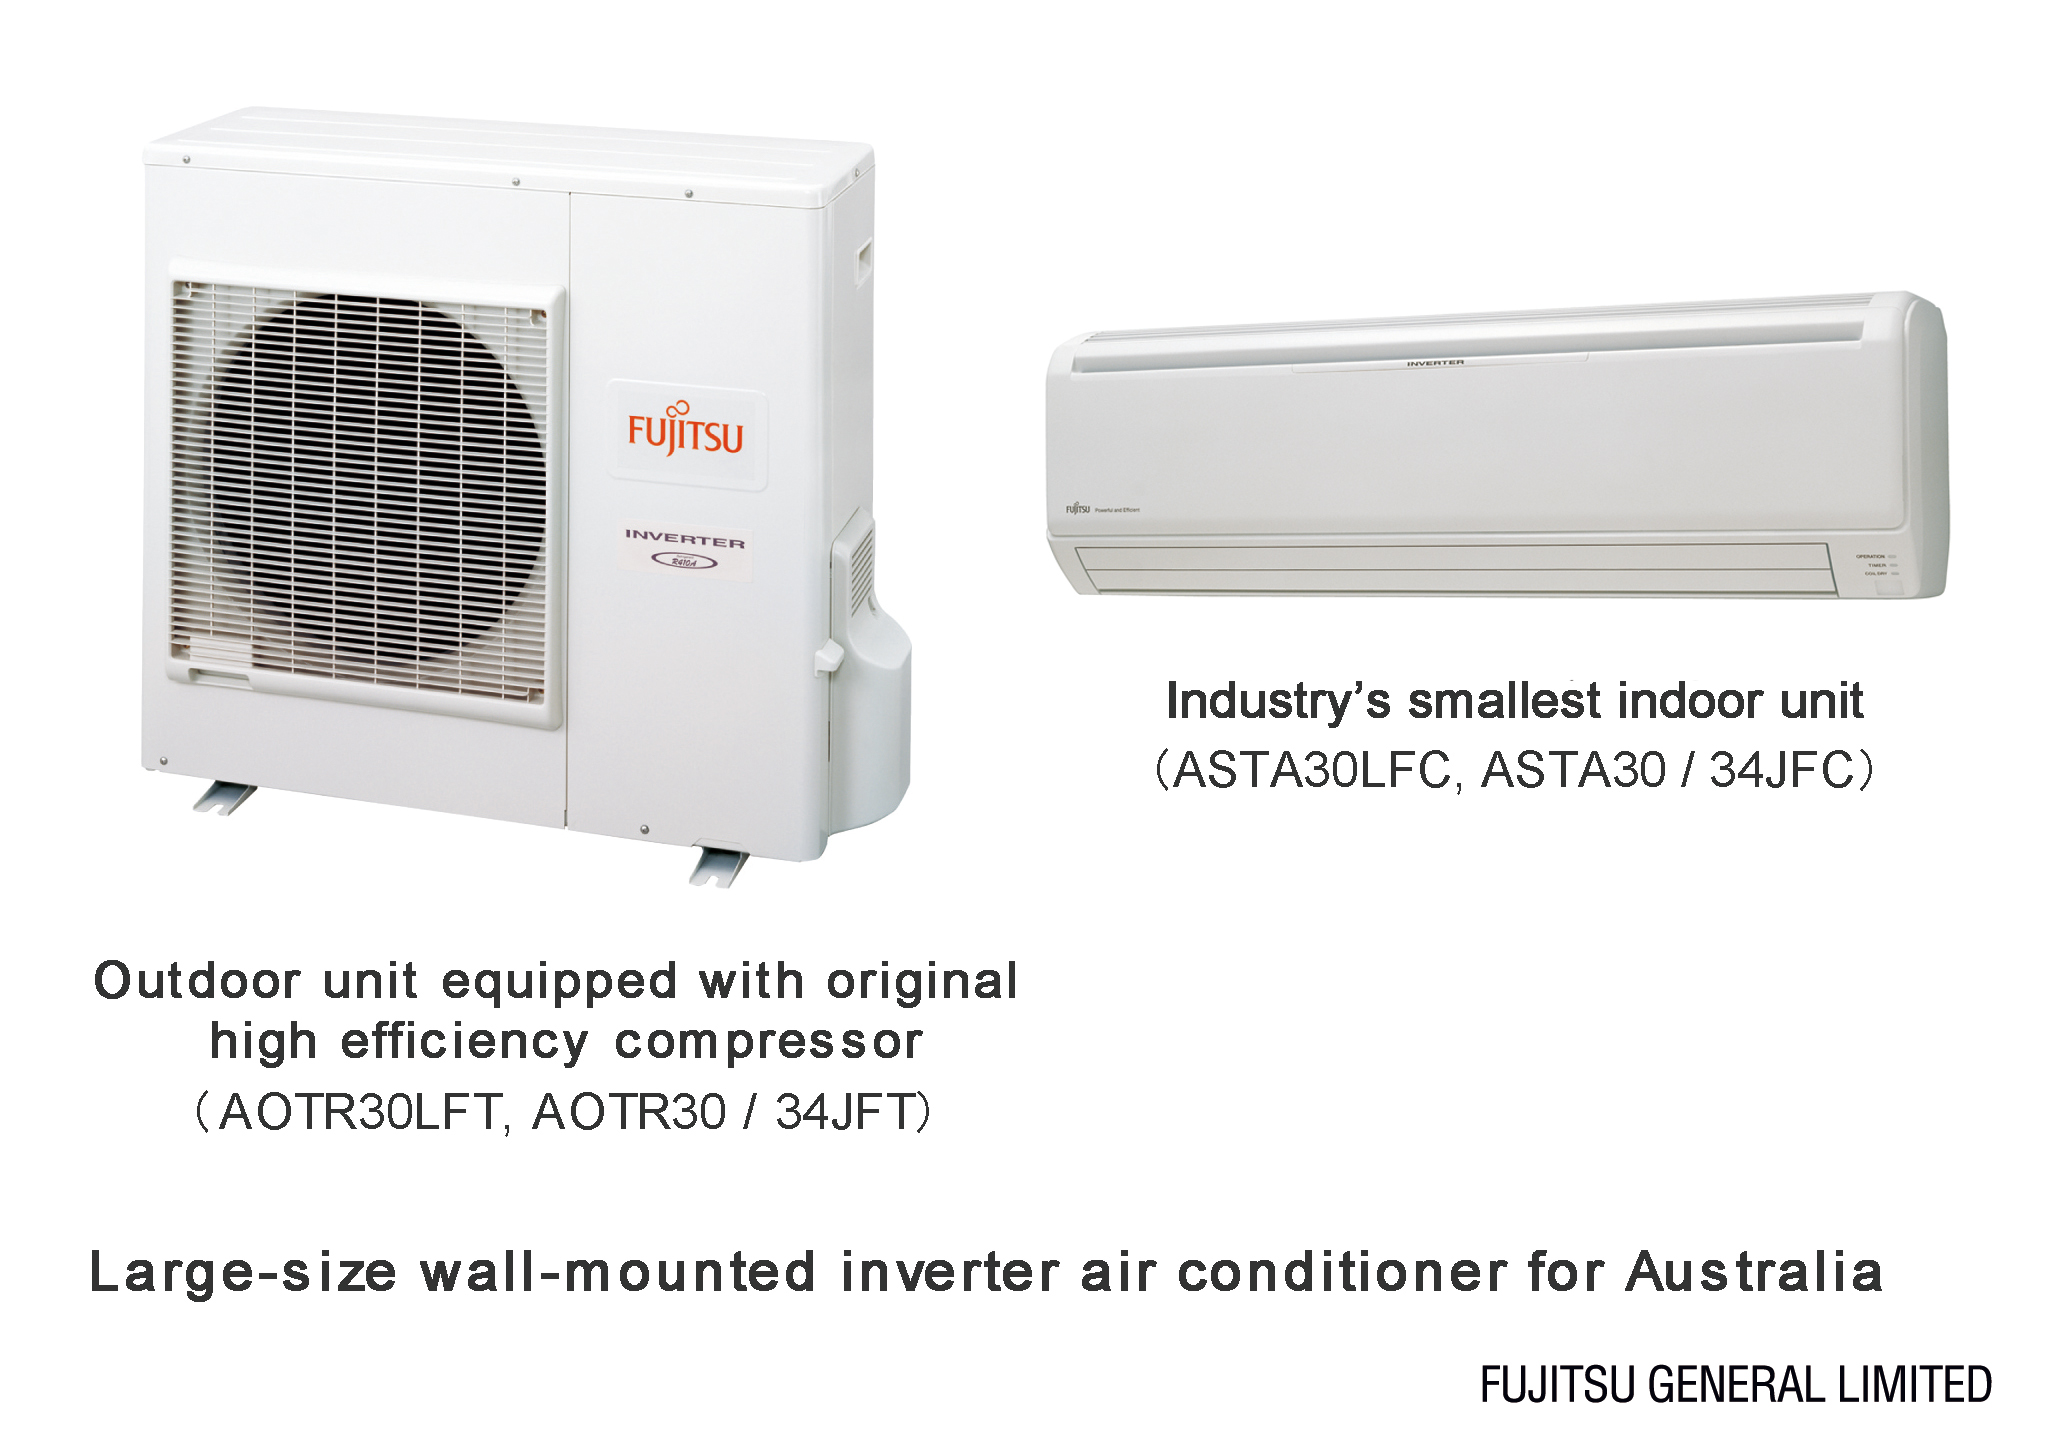 Releasing 3 models of large-size wall-mounted inverter air ...